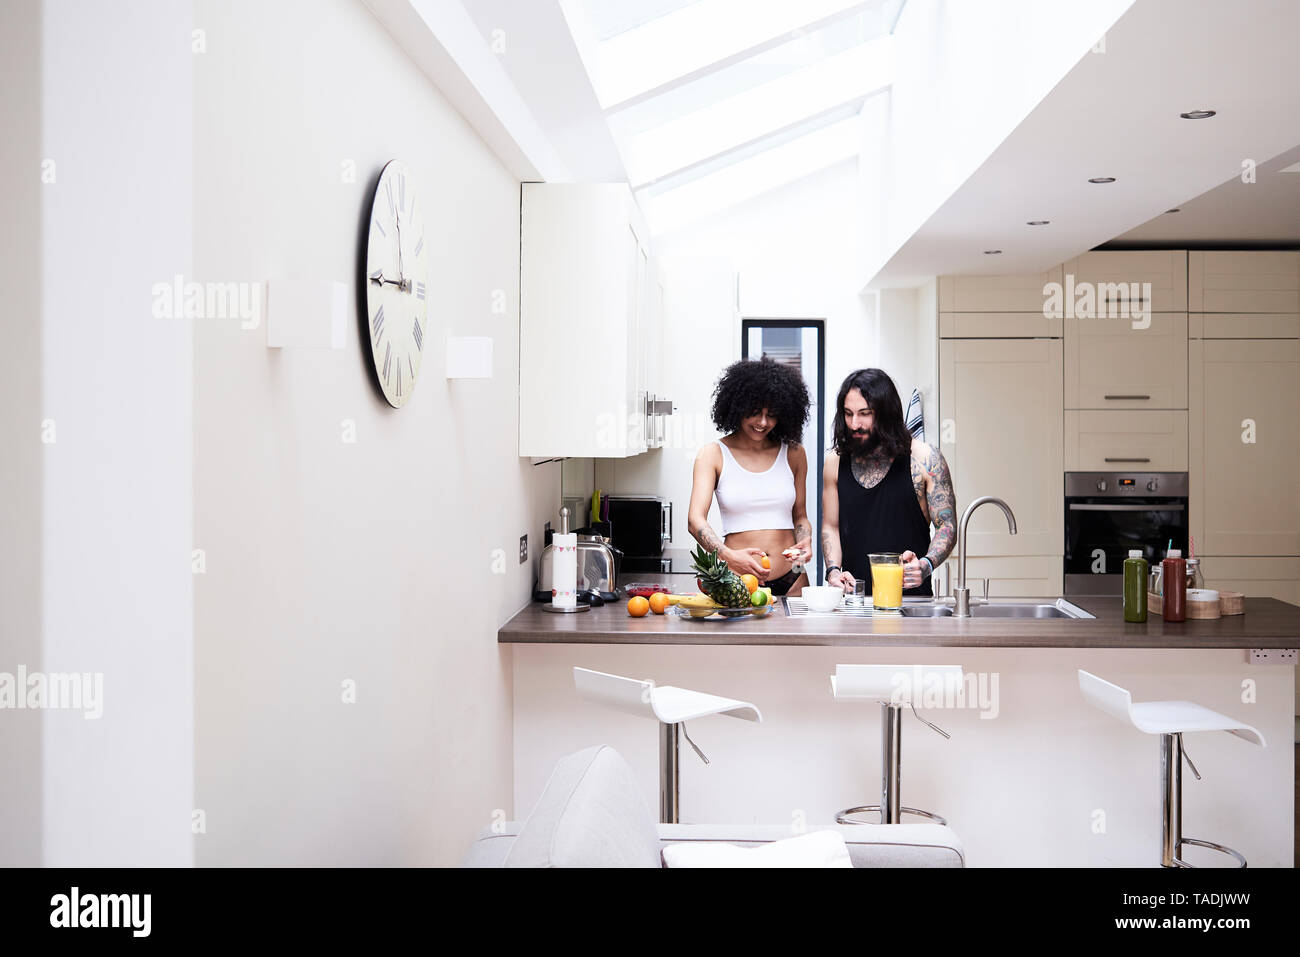 Young couple preparing healthy meal in kitchen - Stock Image